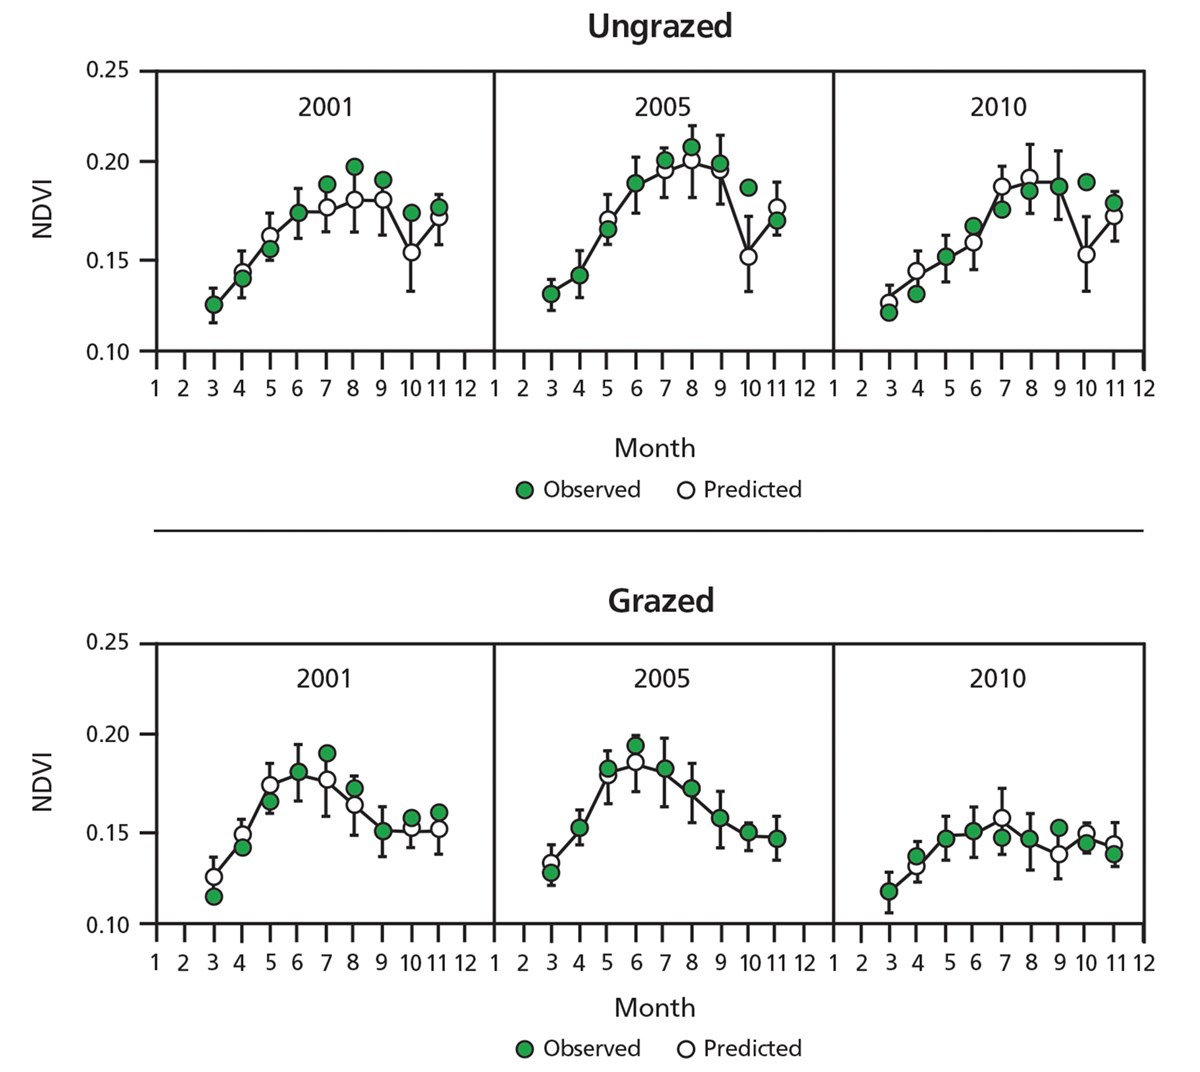 Figure showing monthly observed and predicted NDVI levels for 2001, 2005, and 2010.